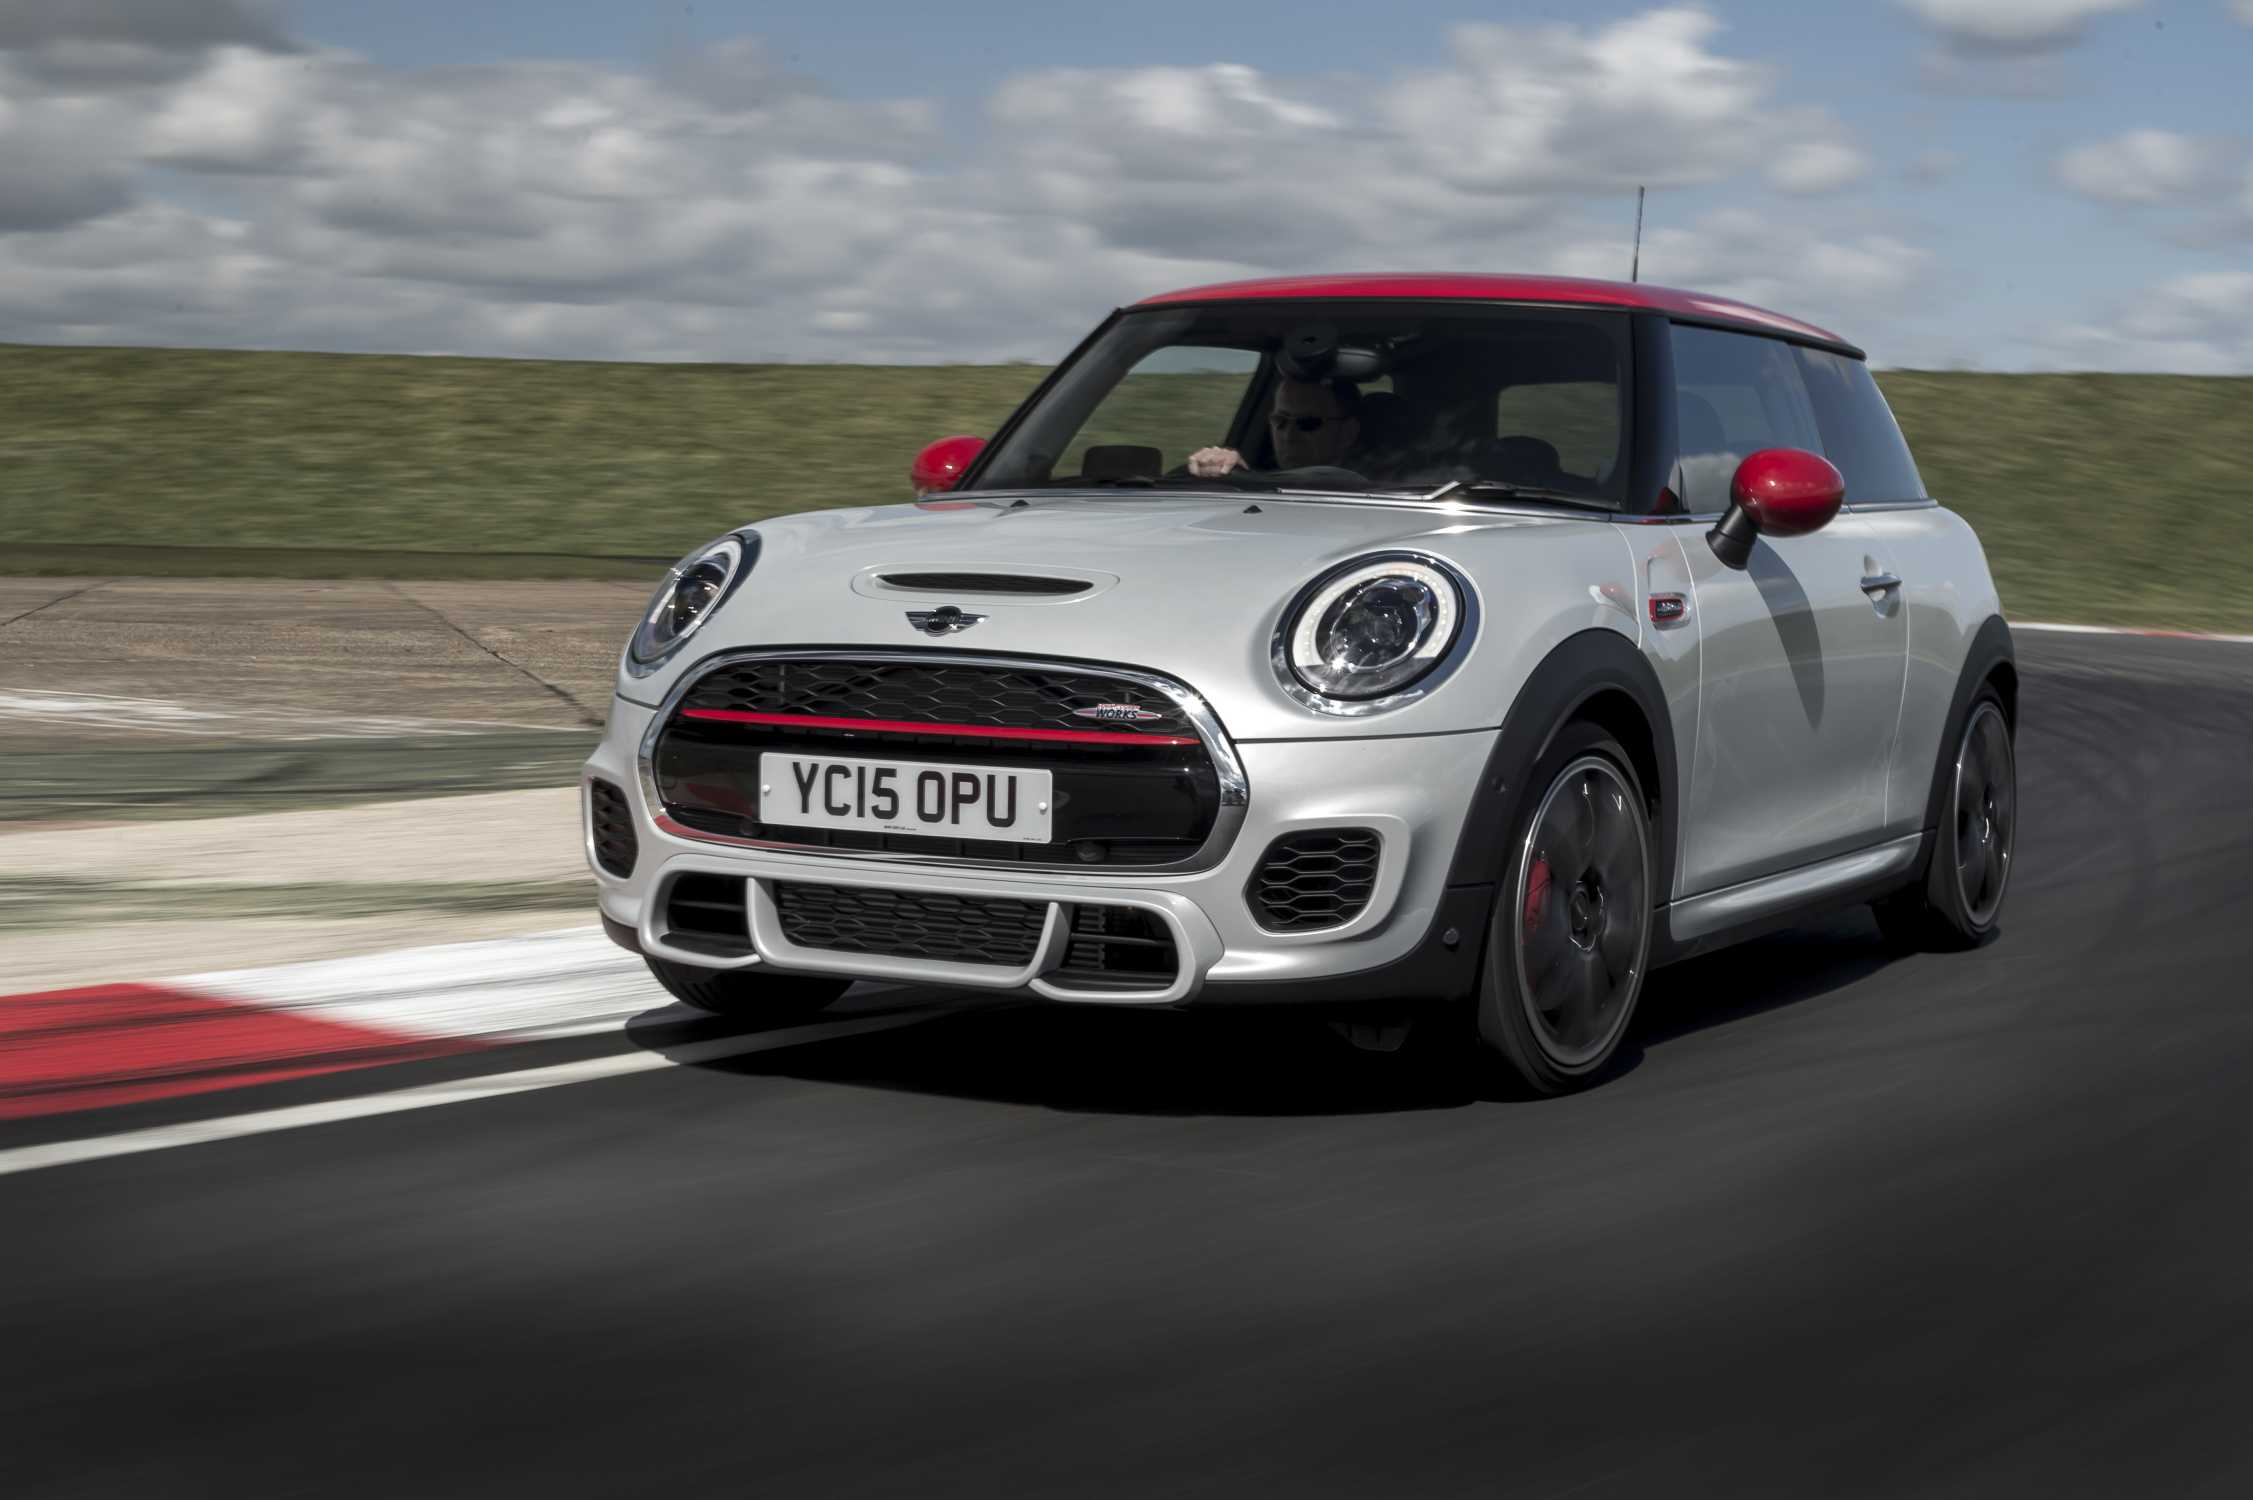 mini john cooper works hatch f56 2 0 231 hp autpmatic. Black Bedroom Furniture Sets. Home Design Ideas